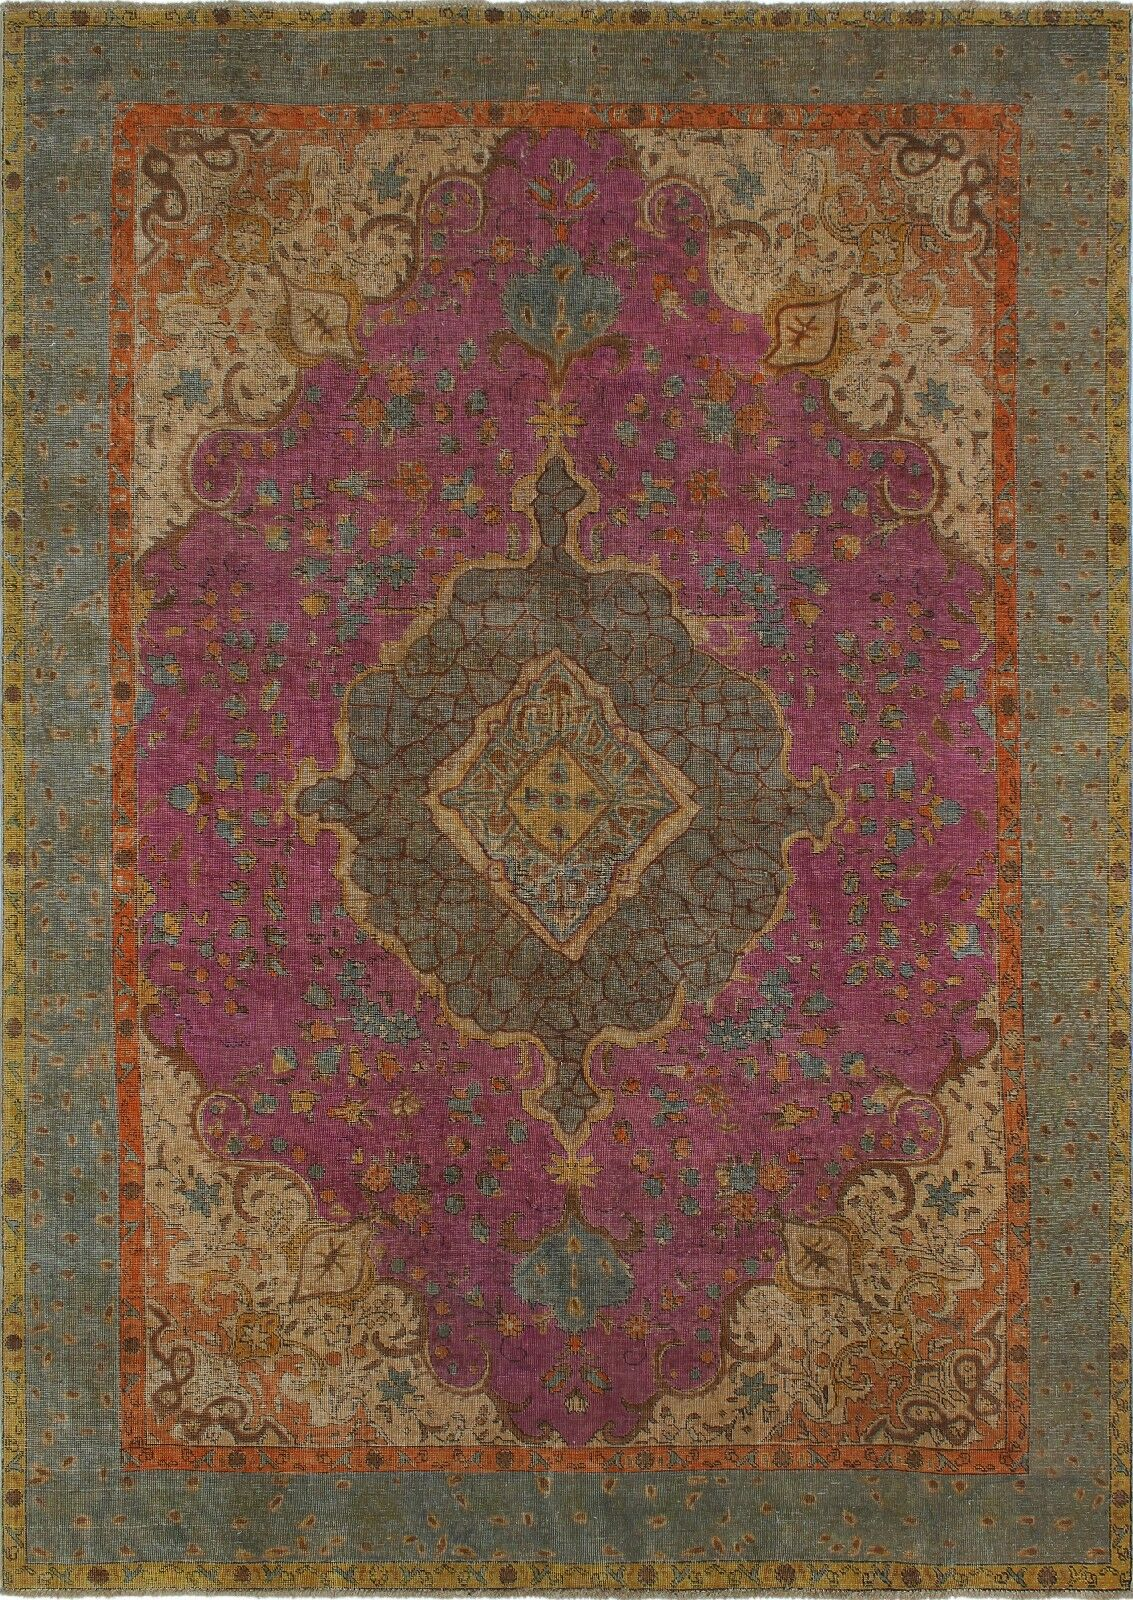 Haislip Vintage Distressed Overdyed Hand Knotted Wool Purple Area Rug